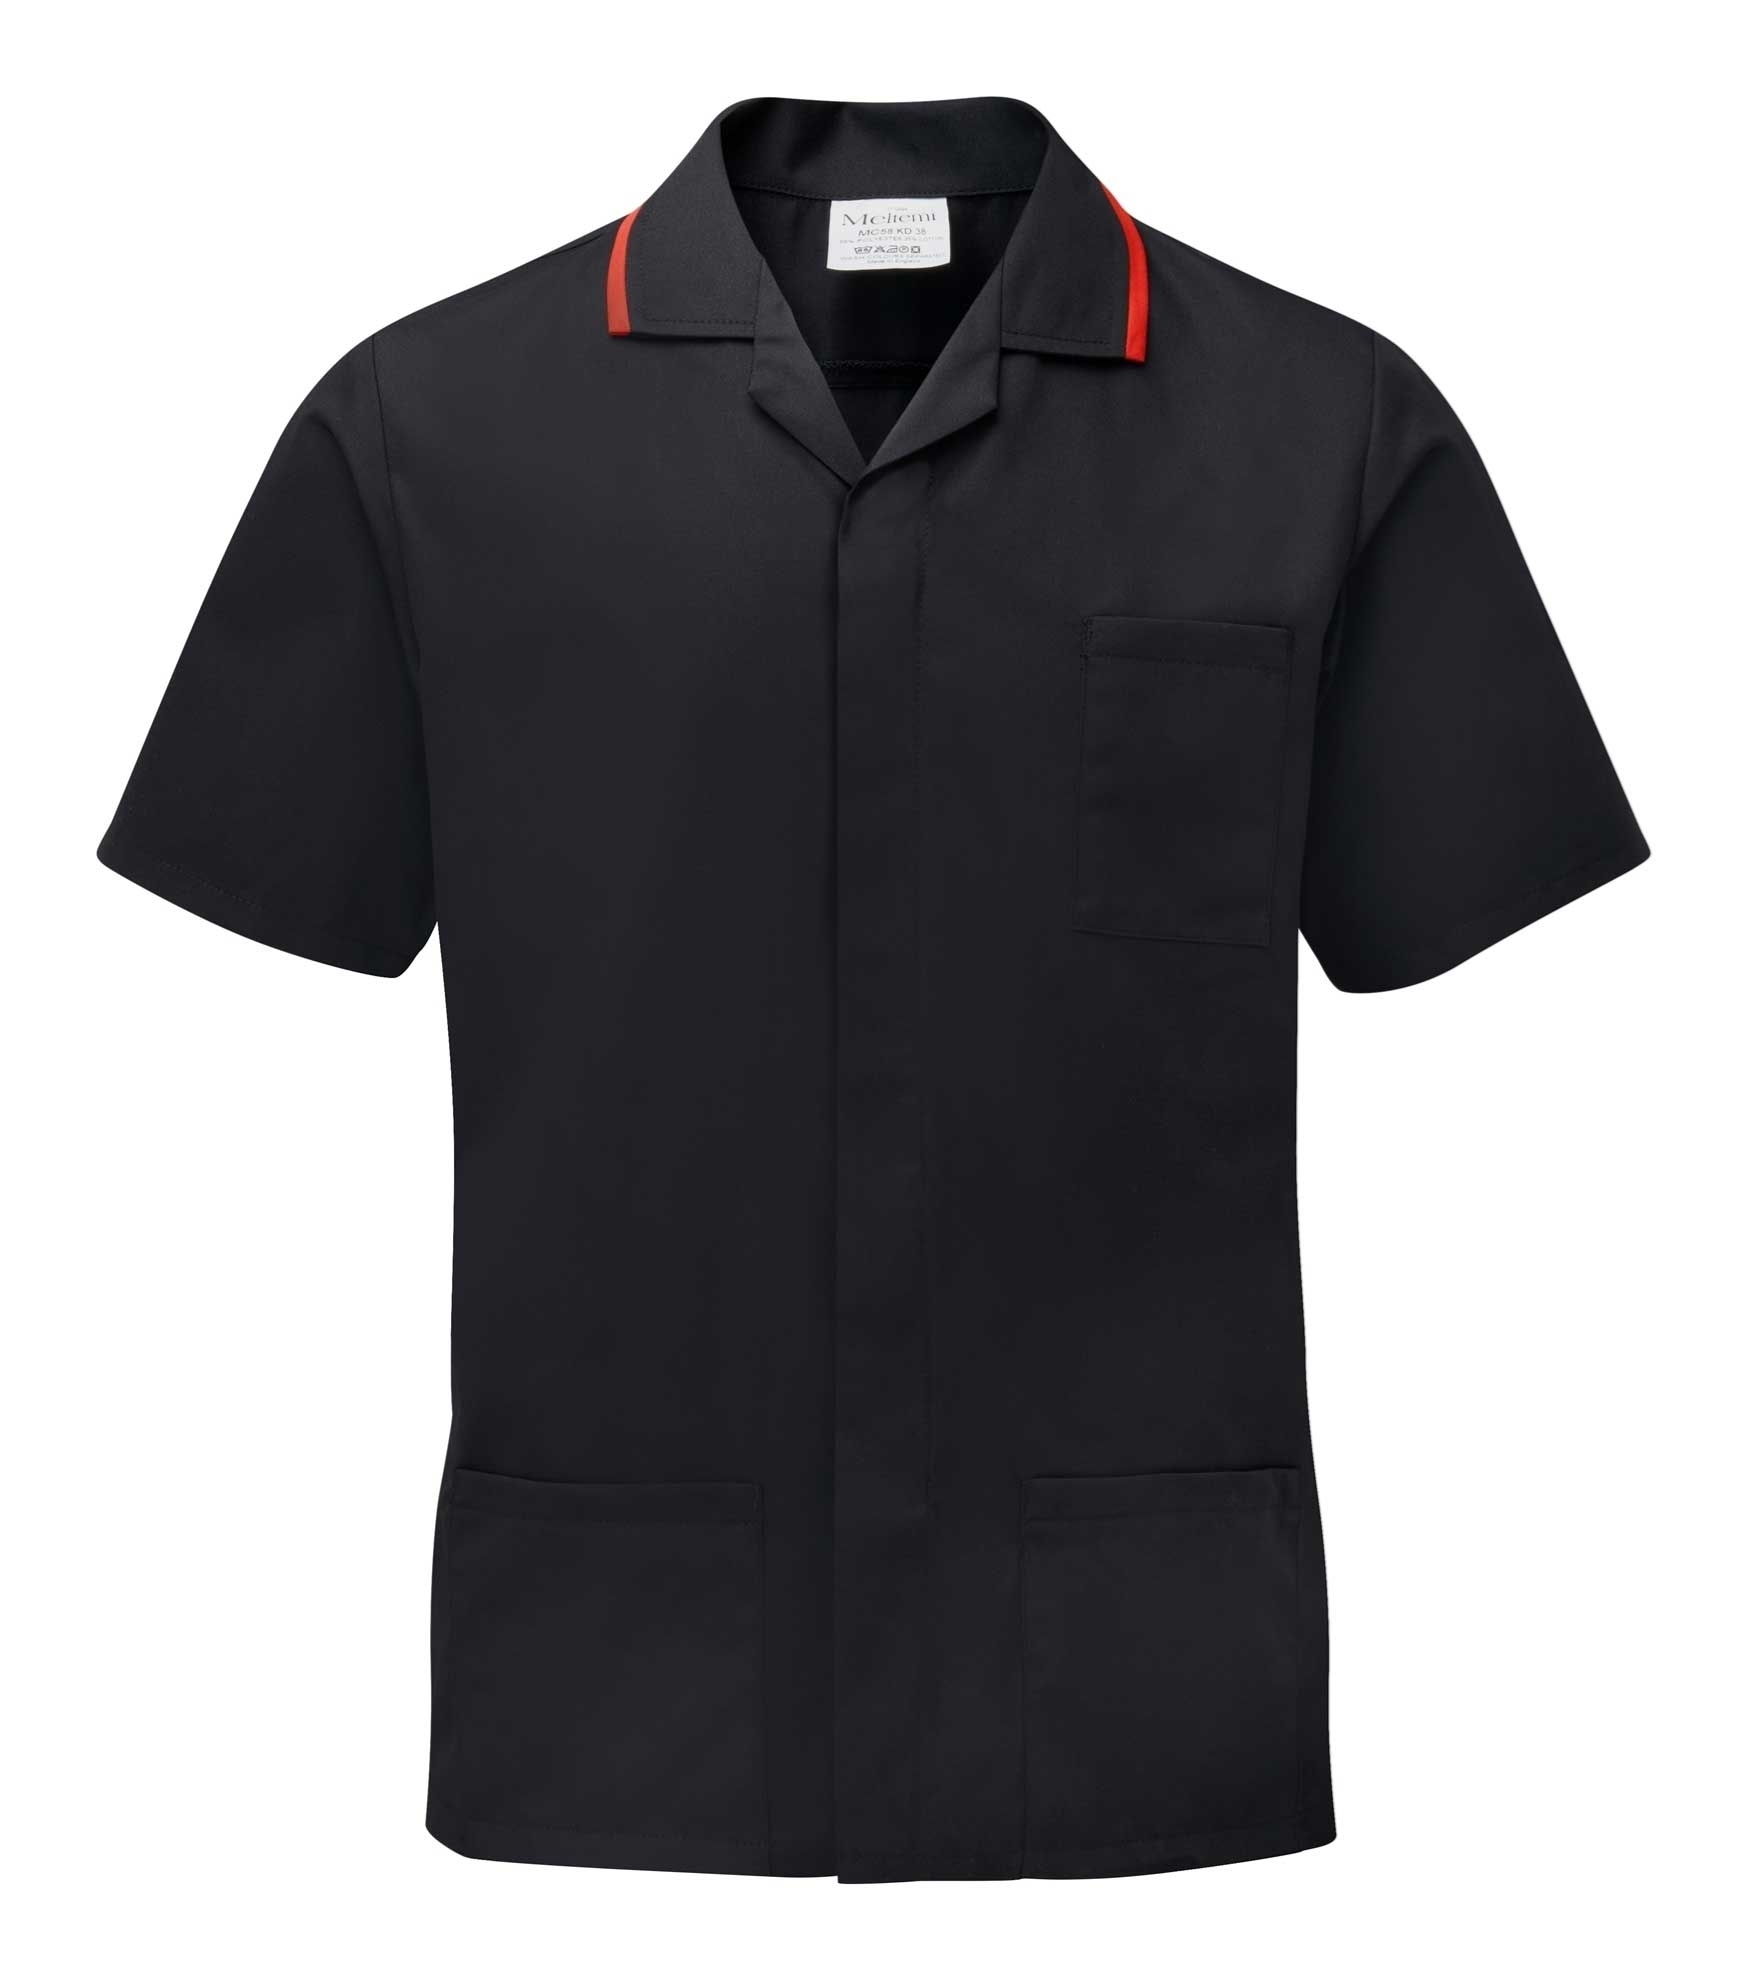 Picture of Advantage Front Fastening Tunic - Black/Red